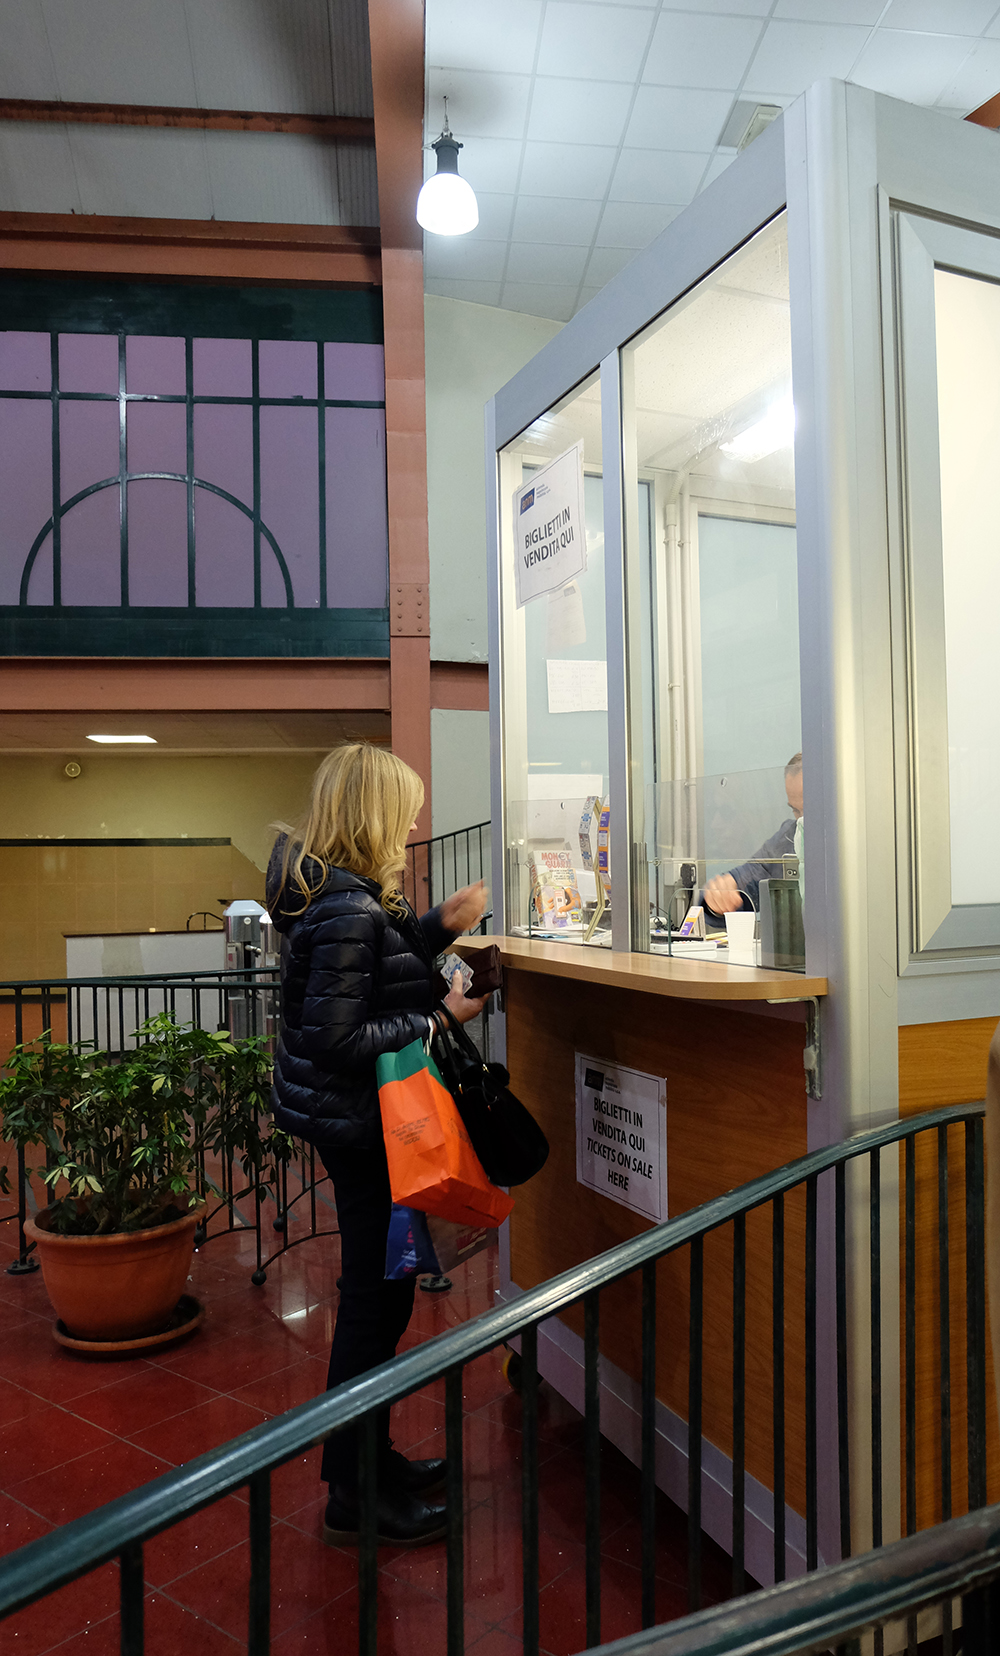 Ticket desk at the funicolare of Chiaia, in Cimarosa station.